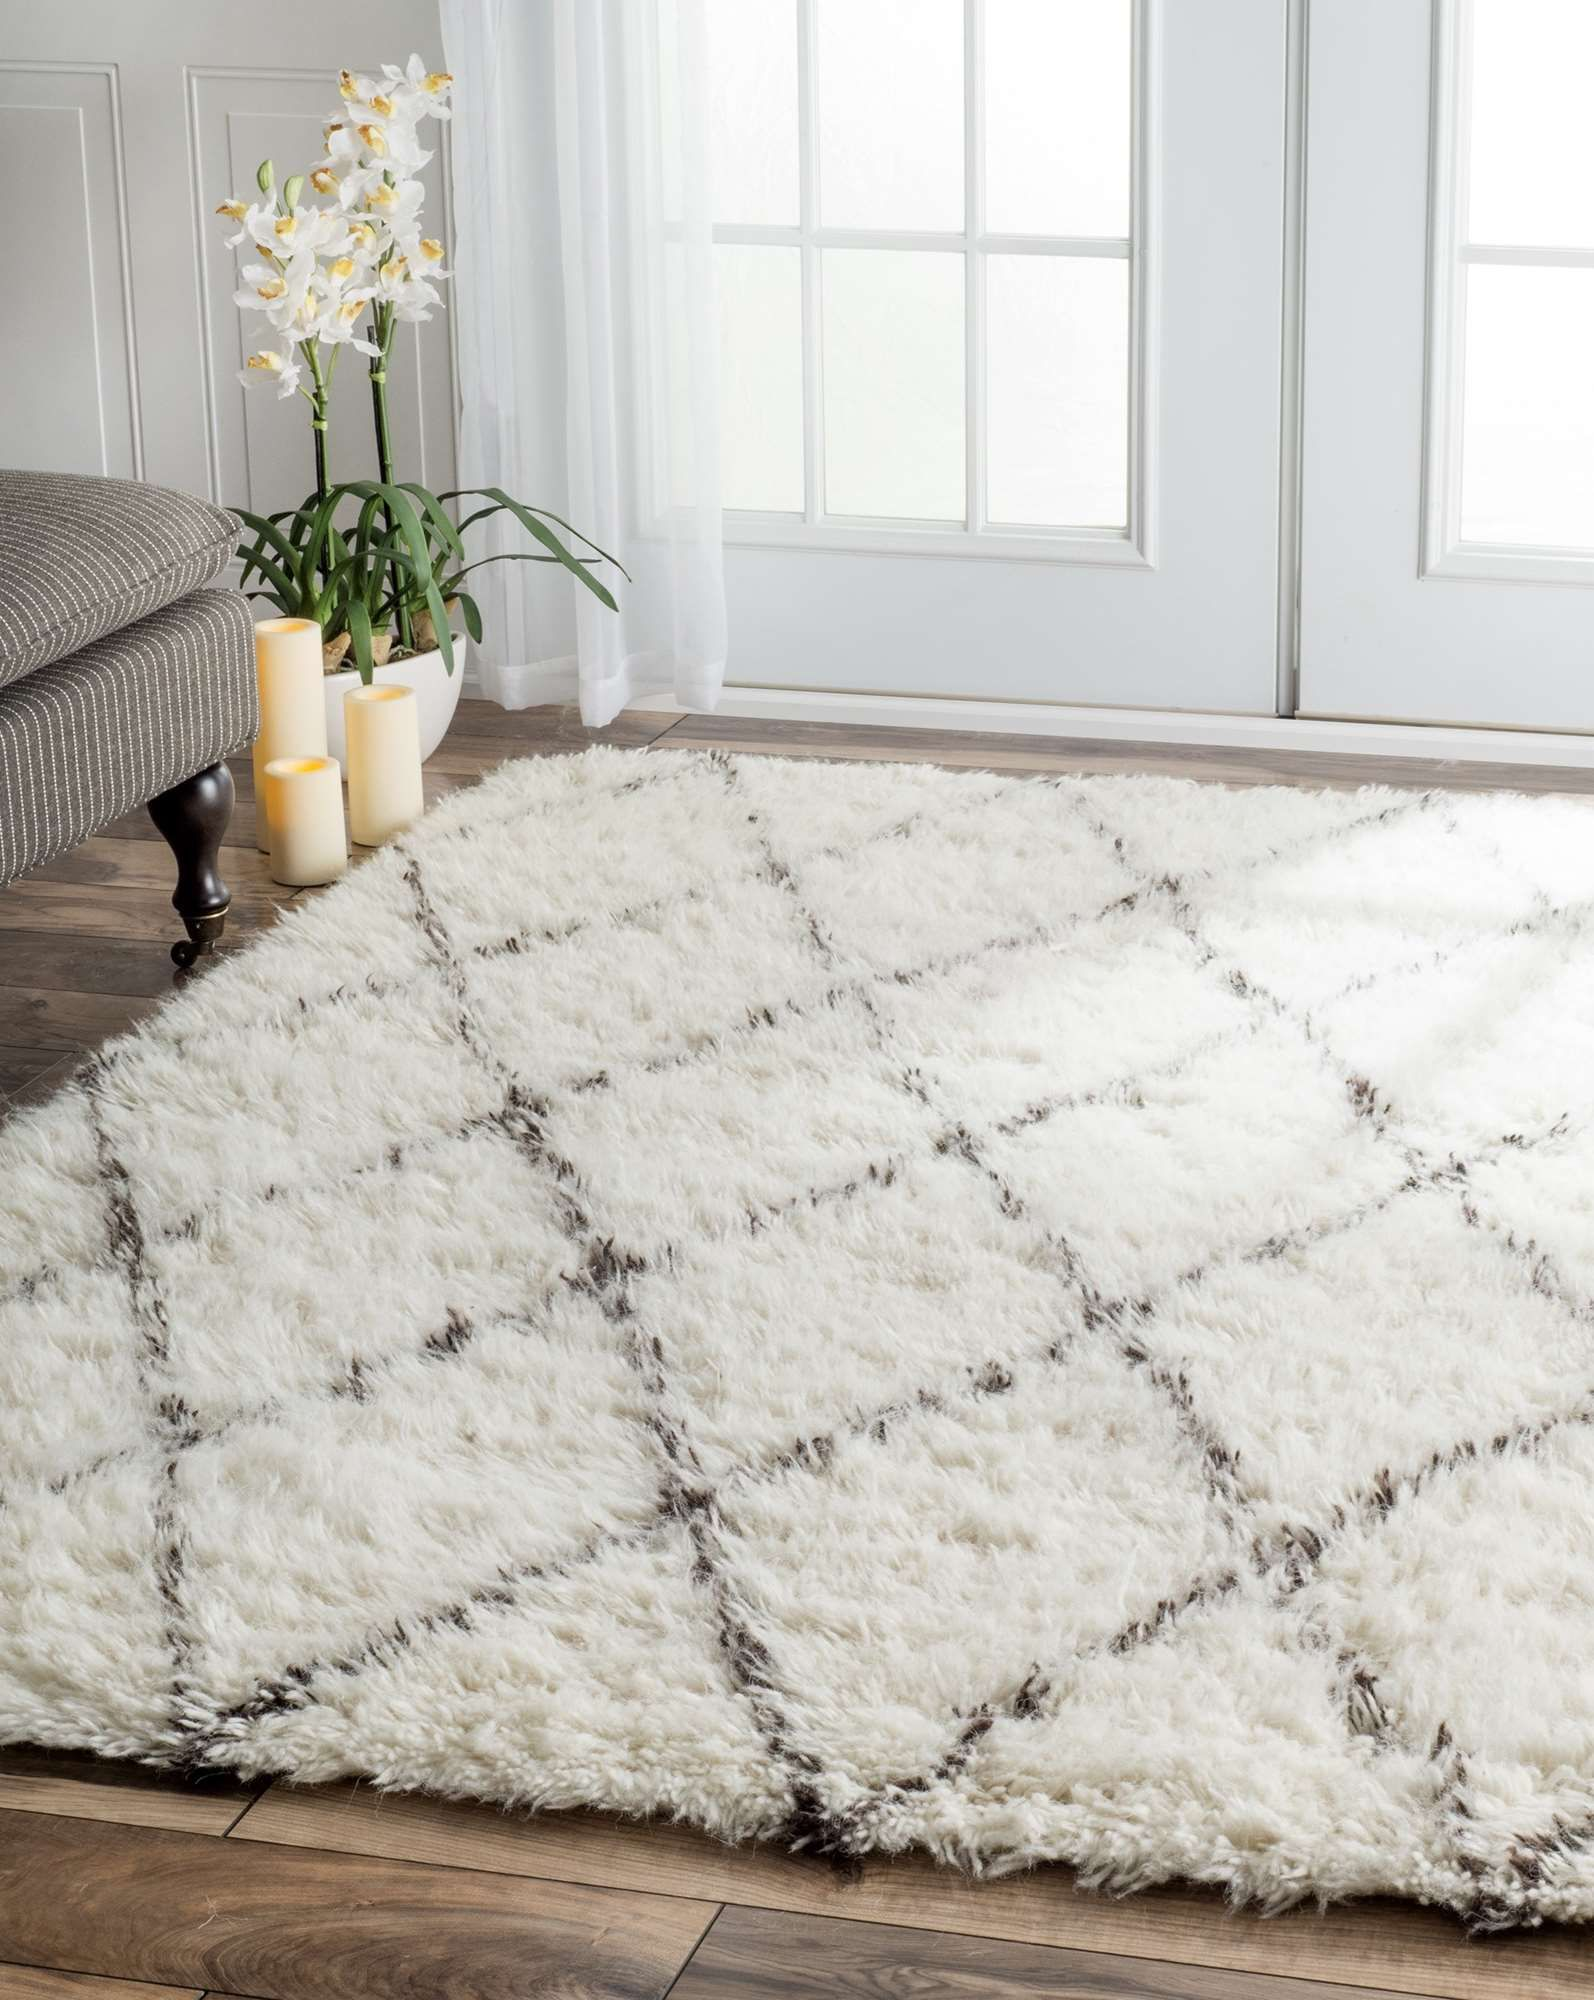 Bring Home The Very Plush And Ultra Soft Handmade Shag Rug